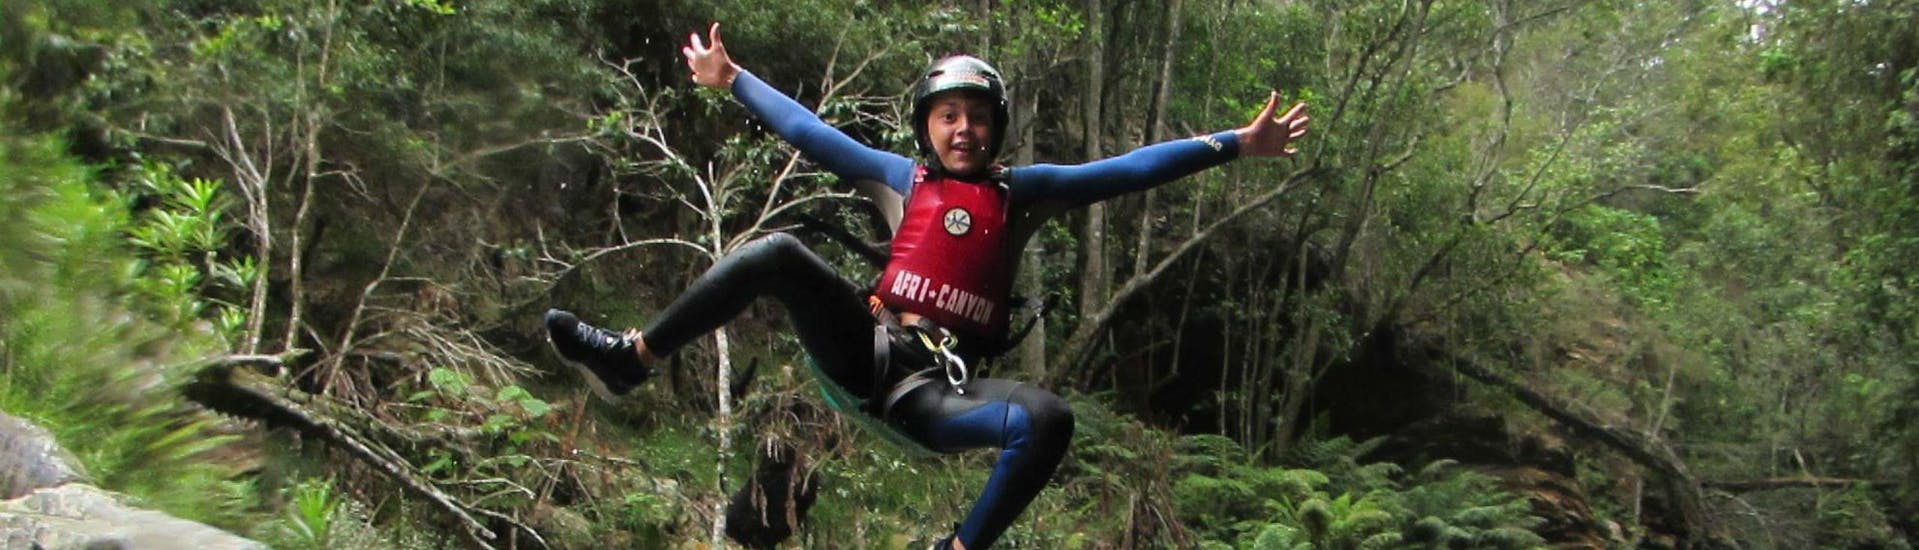 canyoning-in-the-crags-introductory-tour-africanyon-hero